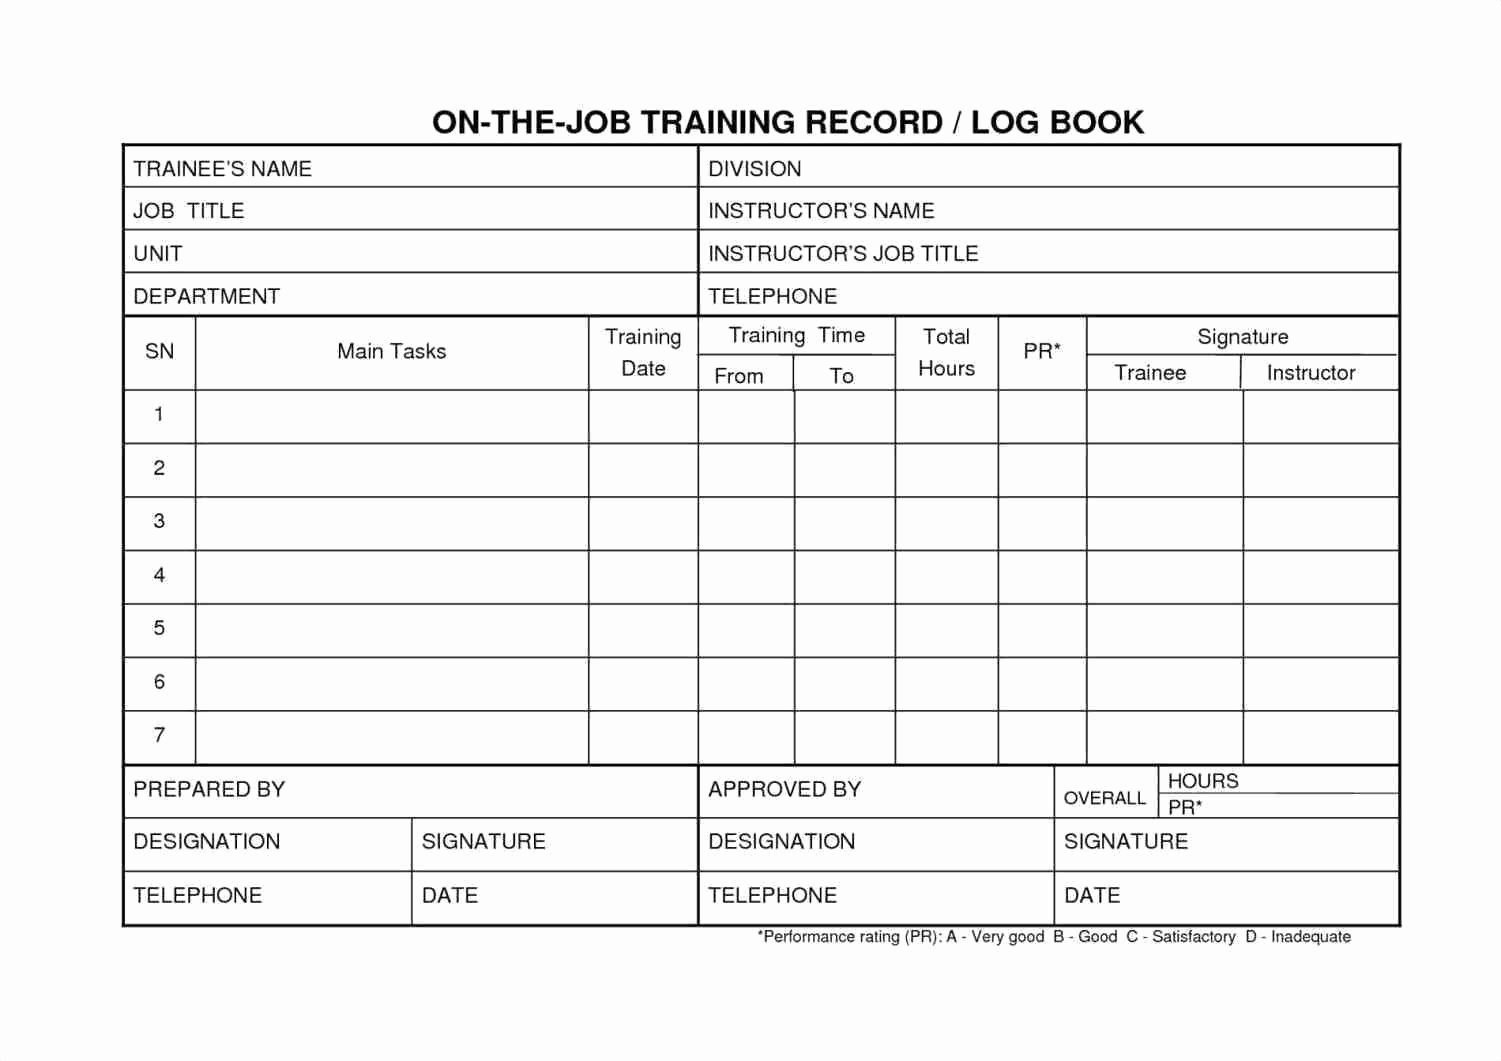 Employee Training Record Template Excel New Employee Training Record Template Excel Luxury Template